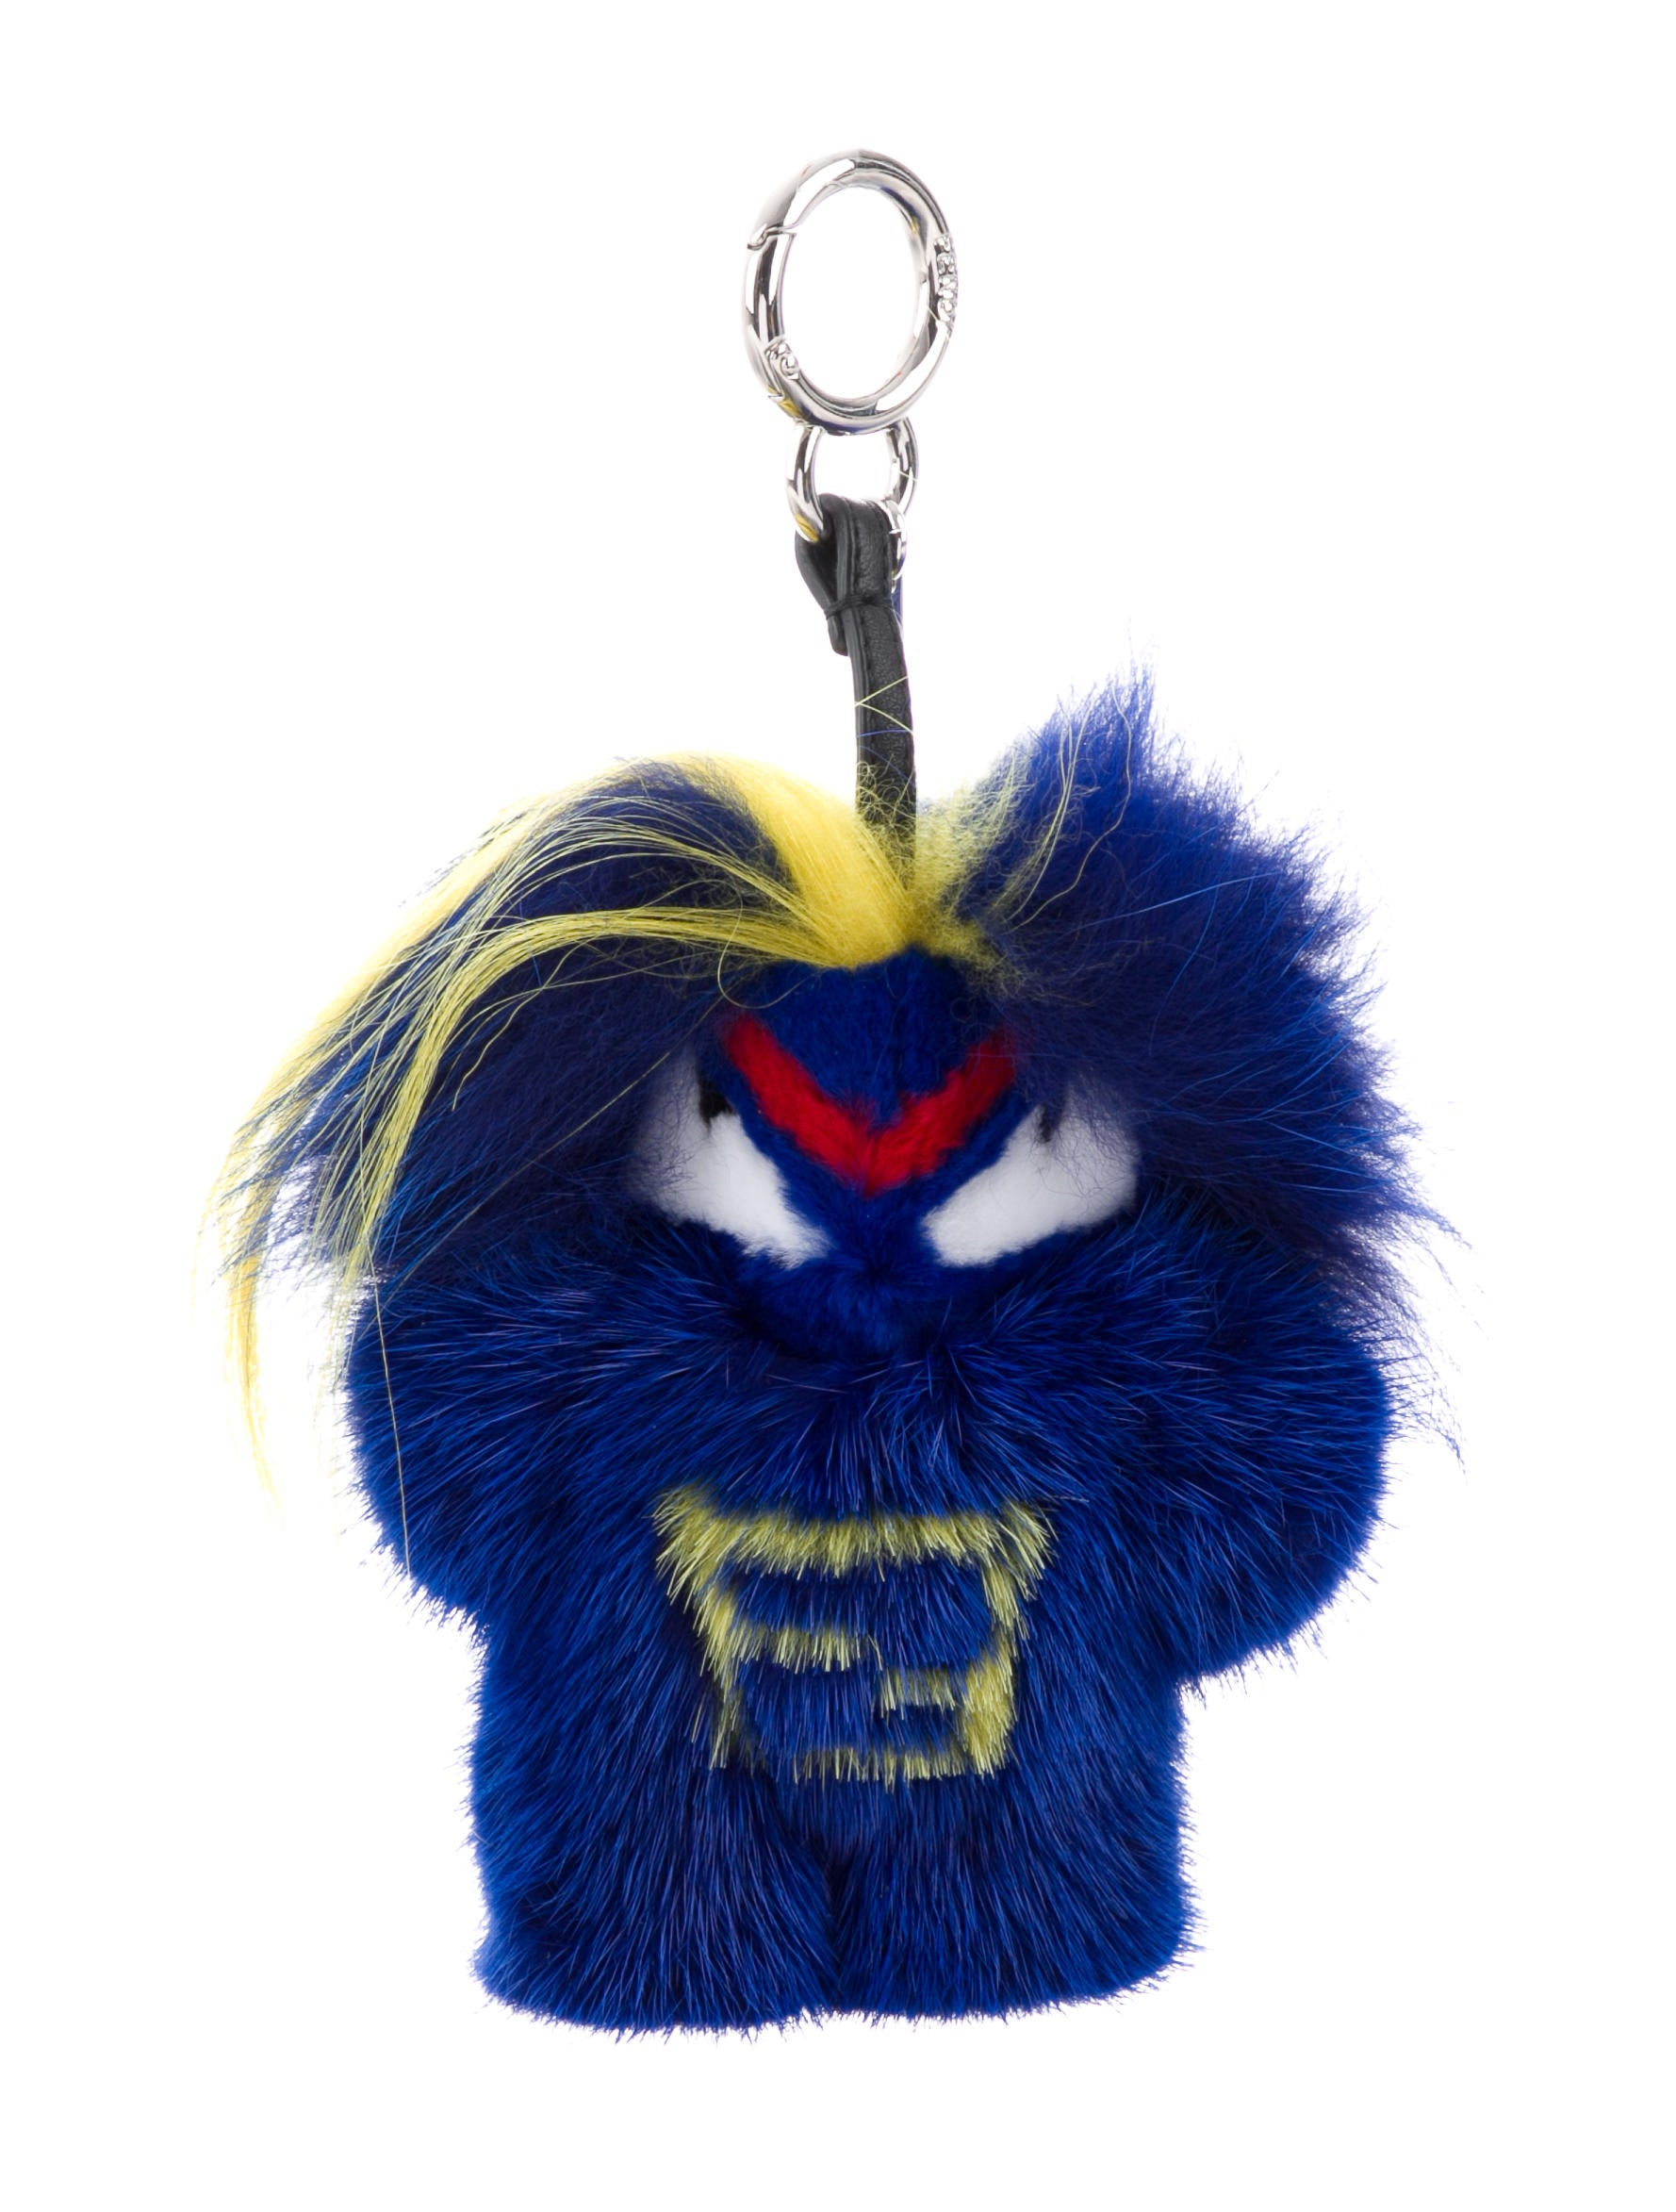 5d49590e75 Fendi 2017 Mink Fur Fendirumi Bug-Kun Monster Bag Charm w  Tags ...